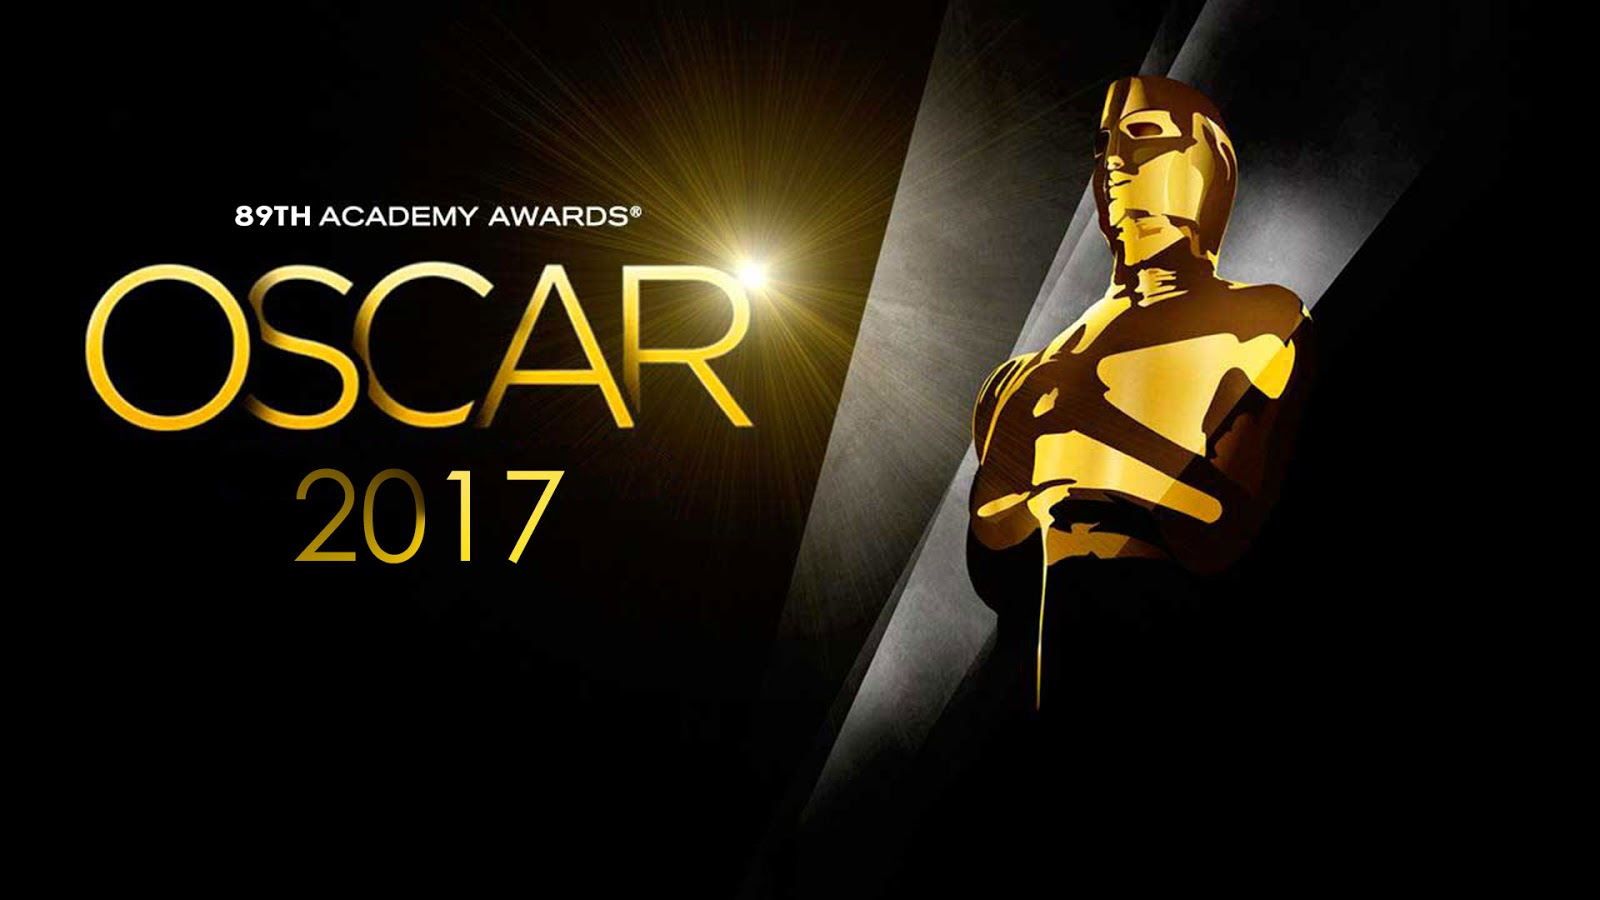 Oscar 2017: Best Picture